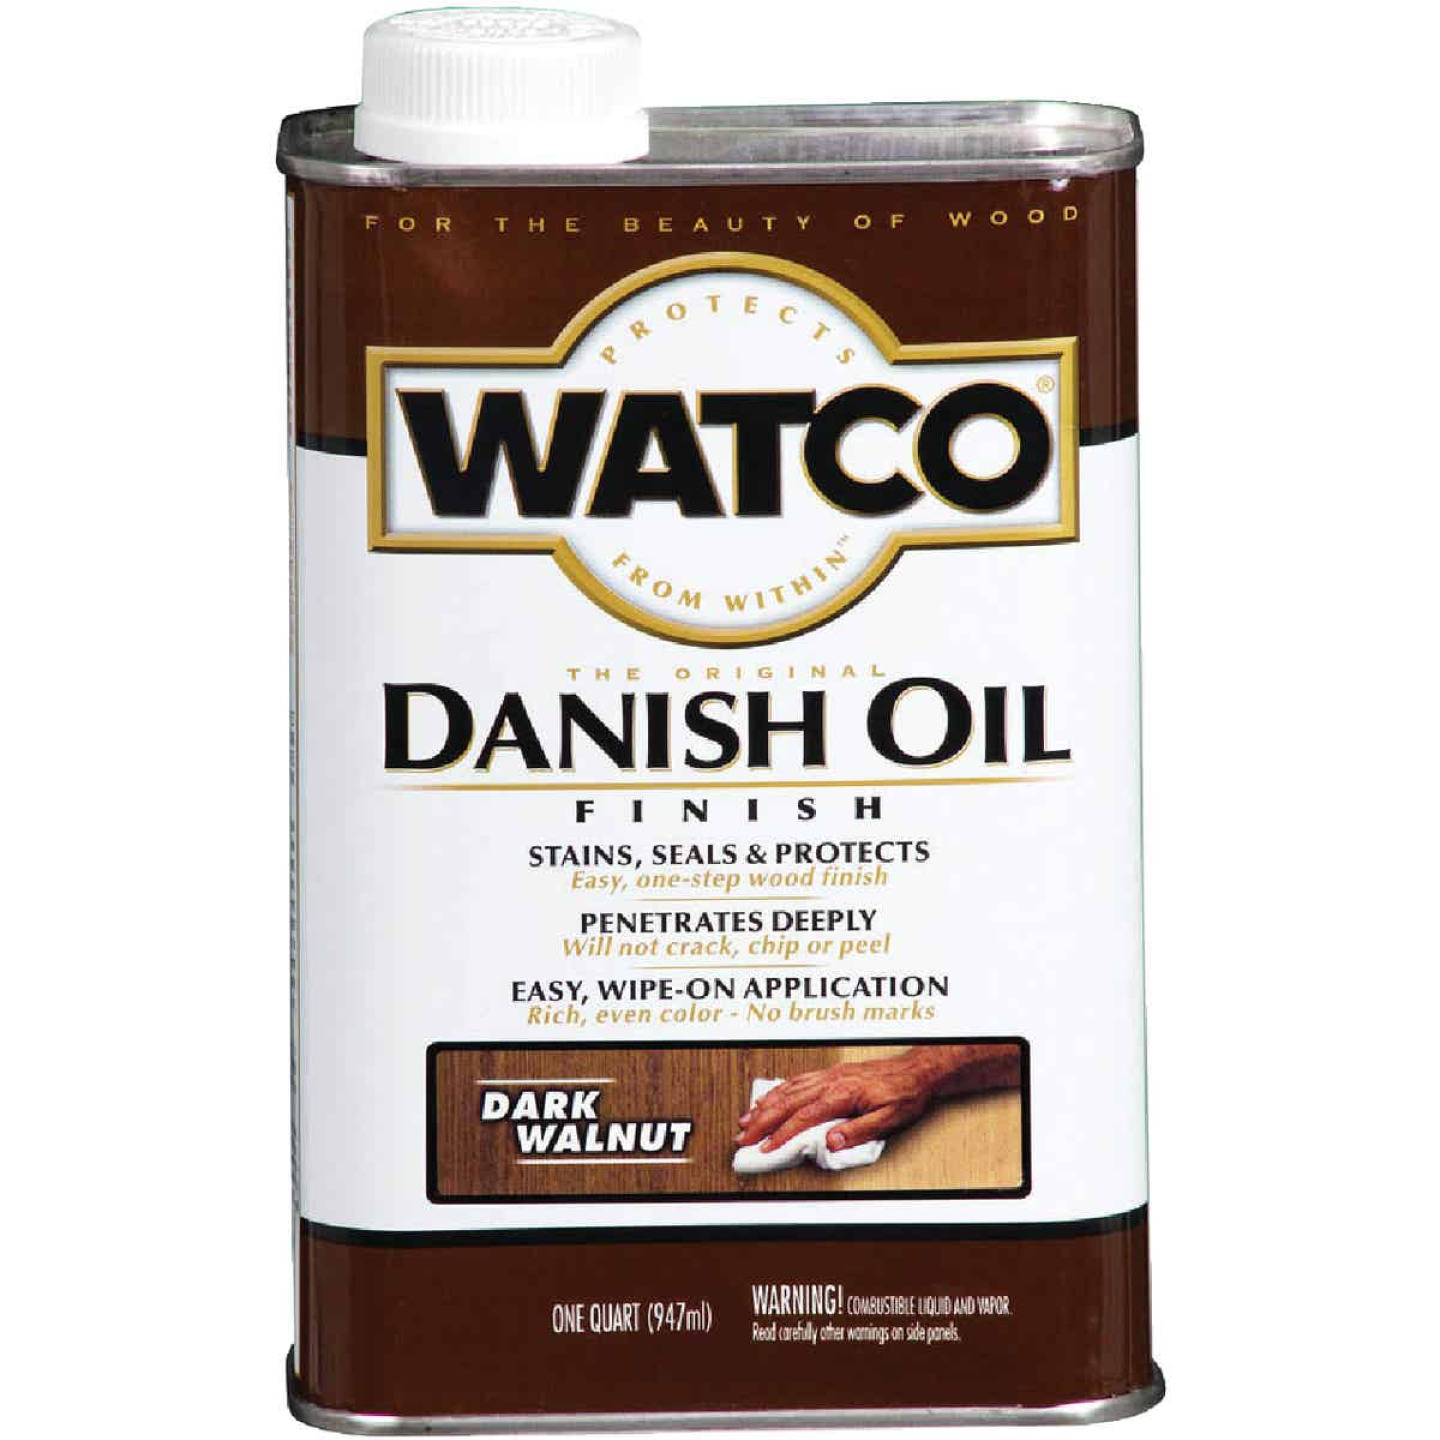 Watco Danish 1 Qt. Low VOC Dark Walnut Oil Finish Image 1